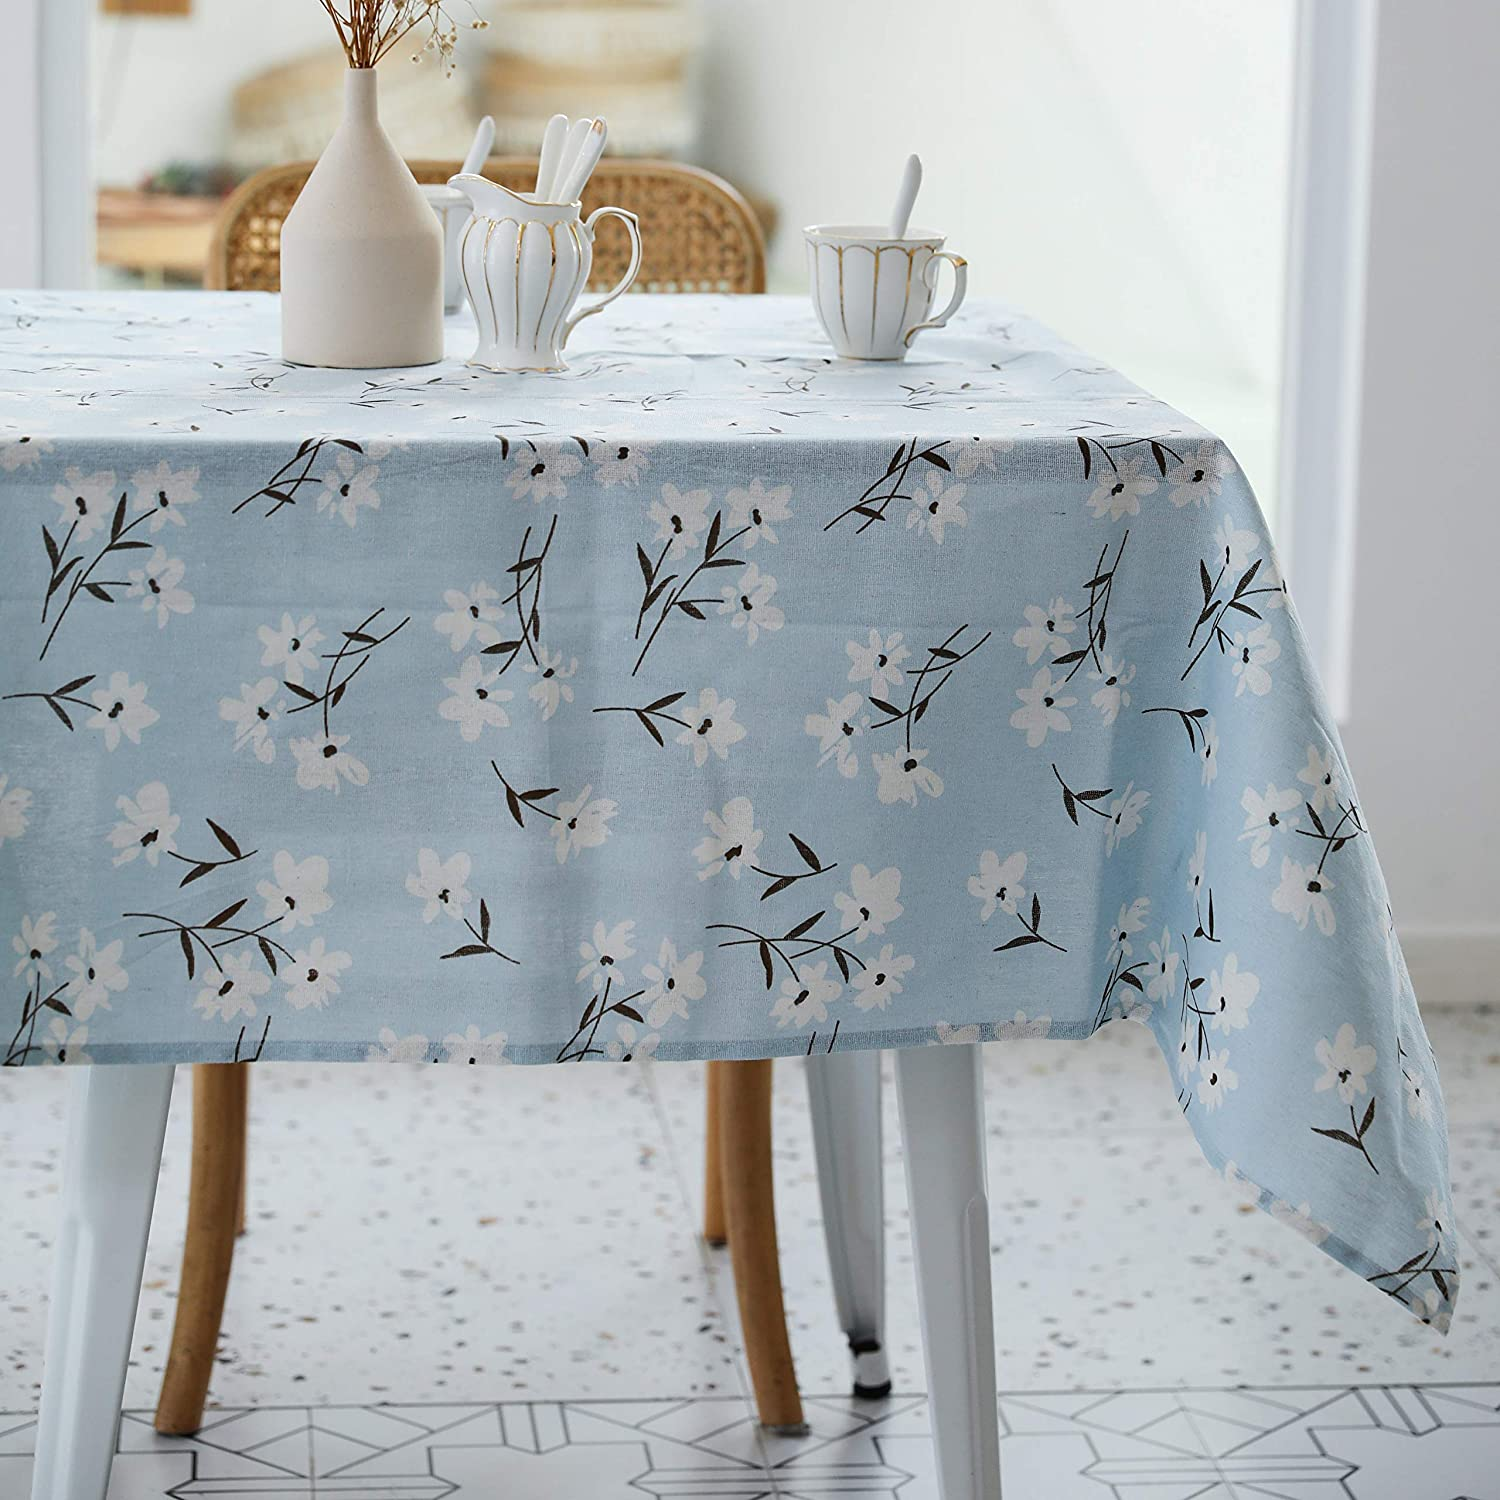 light blue tablecloth with floral print